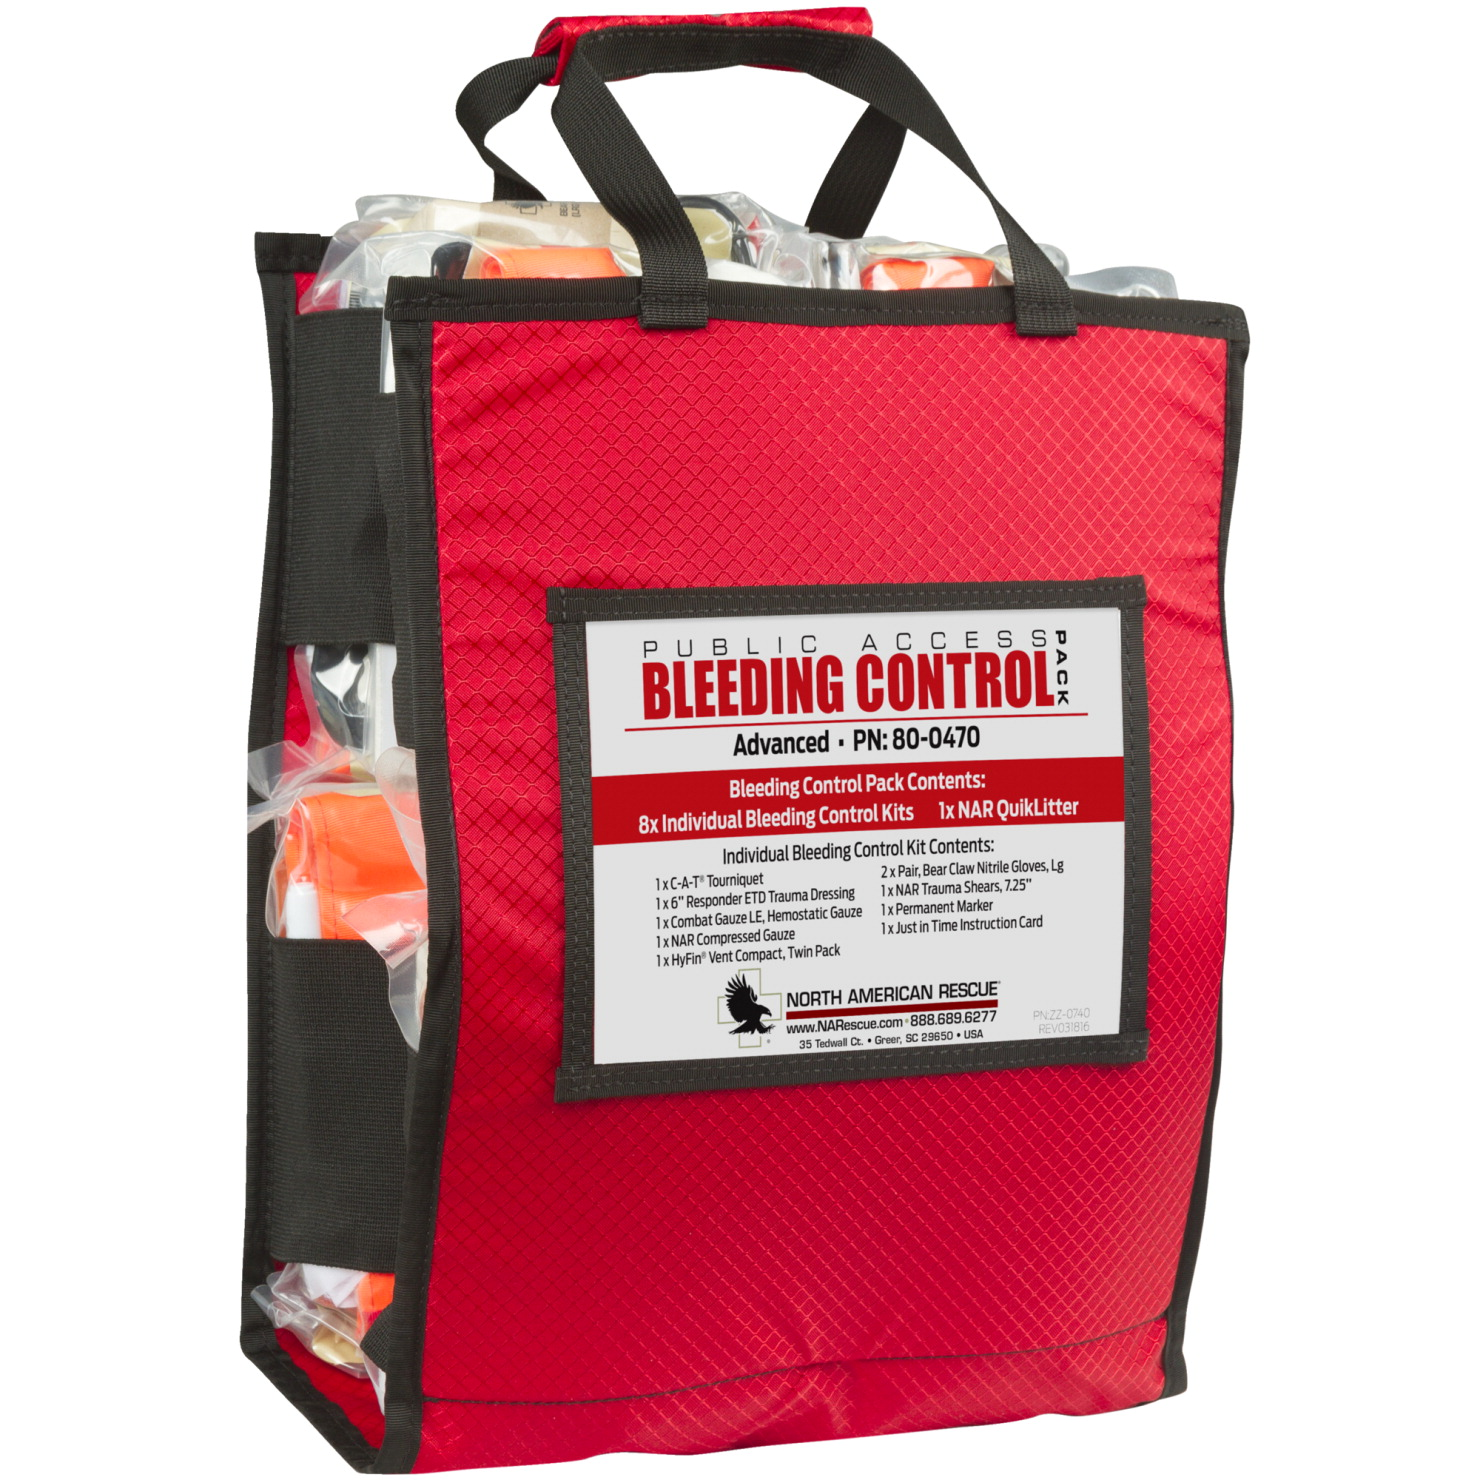 North American Rescue Public Access Bleeding Control, Advanced